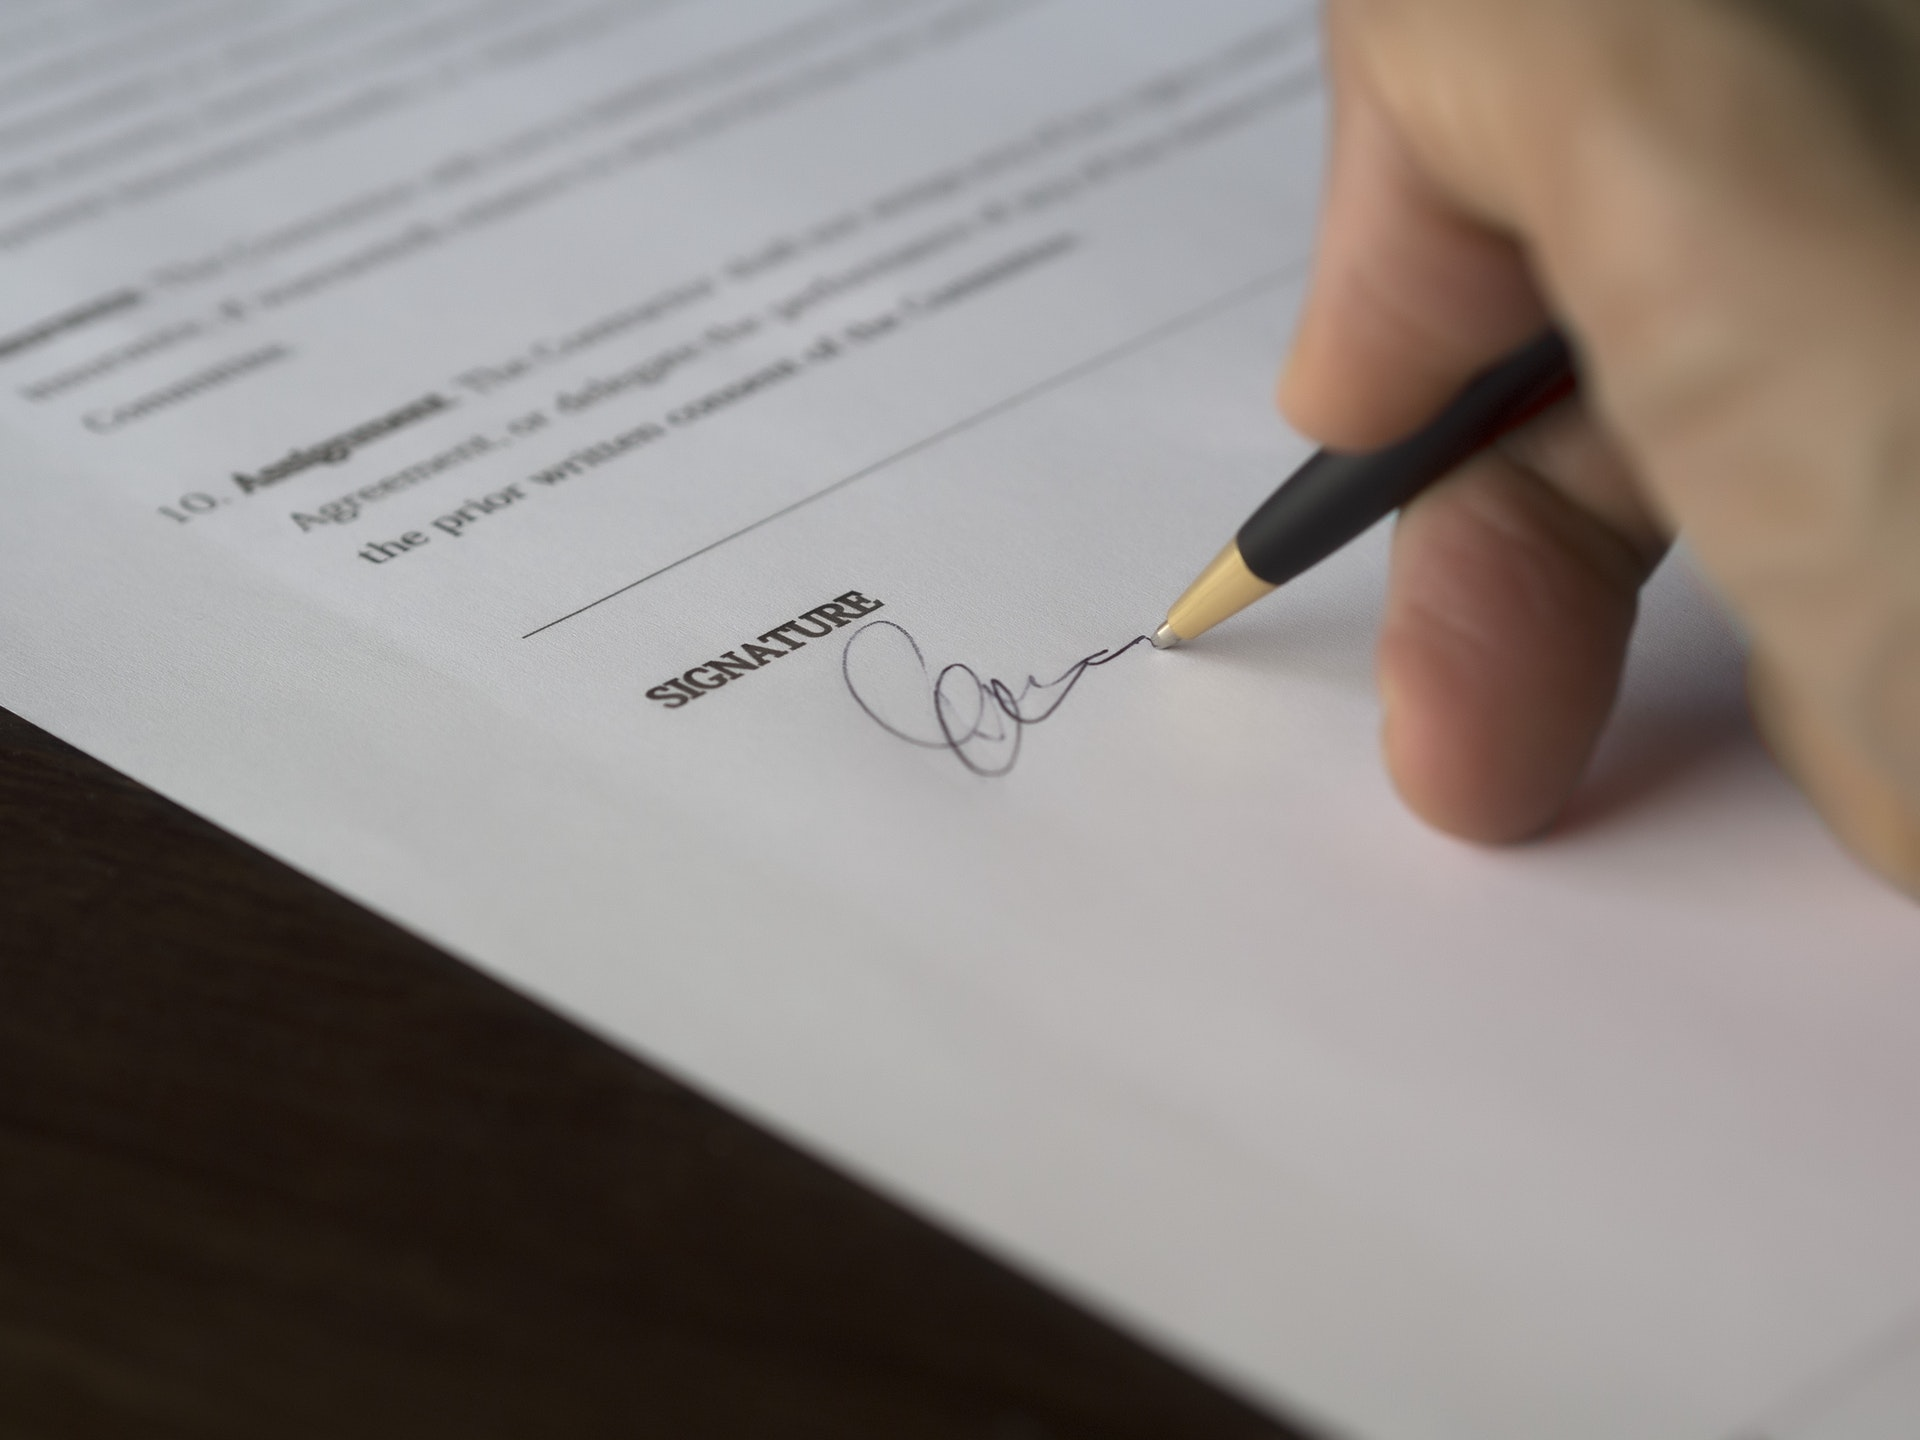 Signing car insurance agreement for added broker coverage